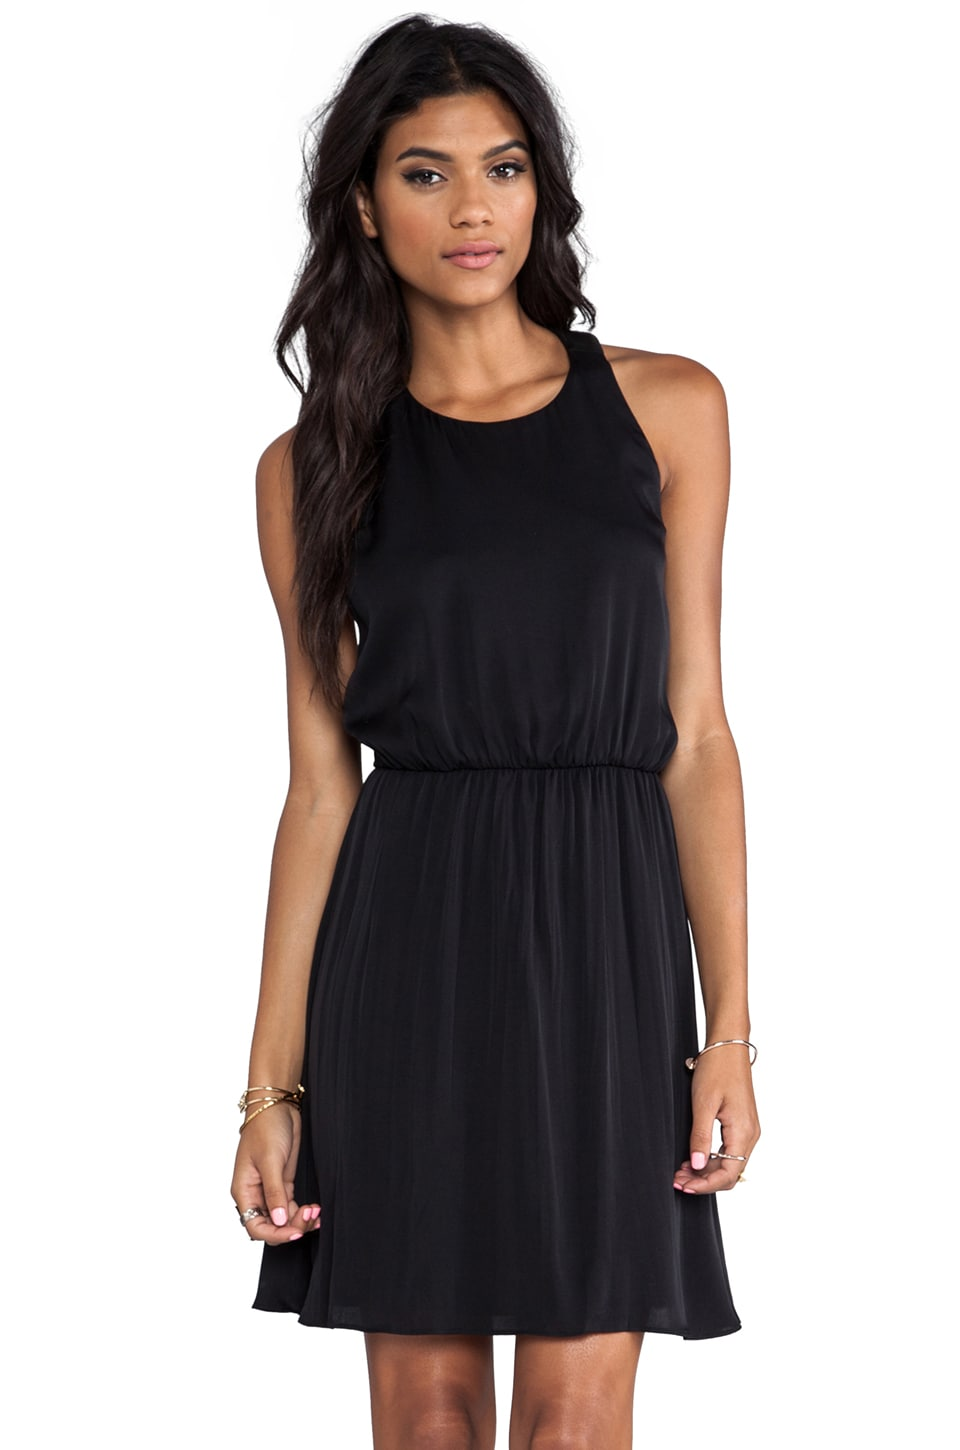 Alice + Olivia Kalista High Neck T-Back Dress in Black